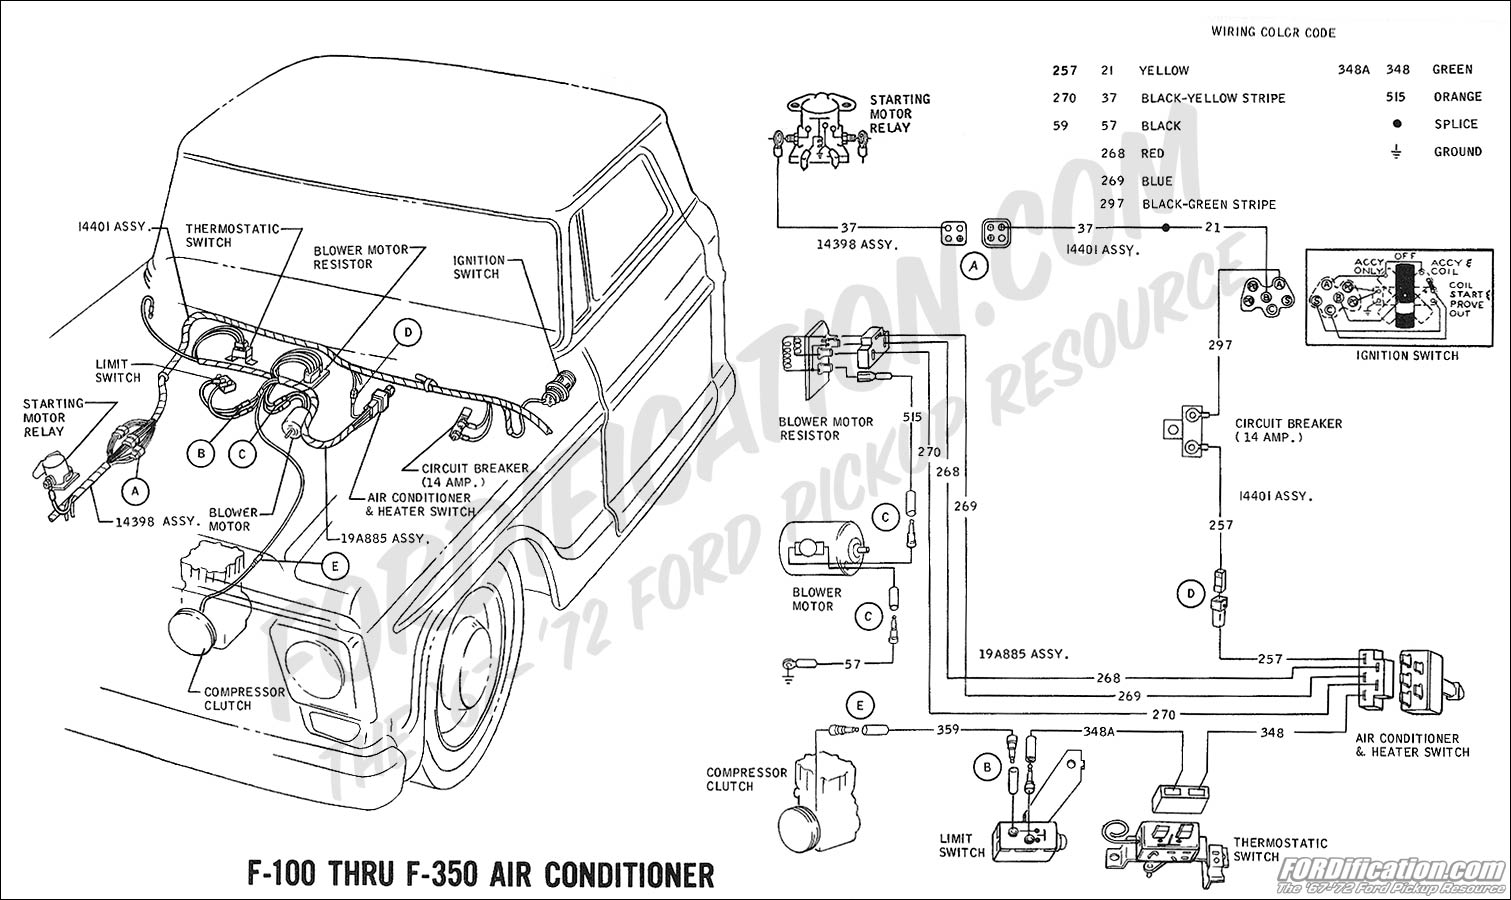 hight resolution of ford f150 air conditioning diagram data wiring diagram 2004 ford focus ac diagram 1999 ford f 150 ac diagram